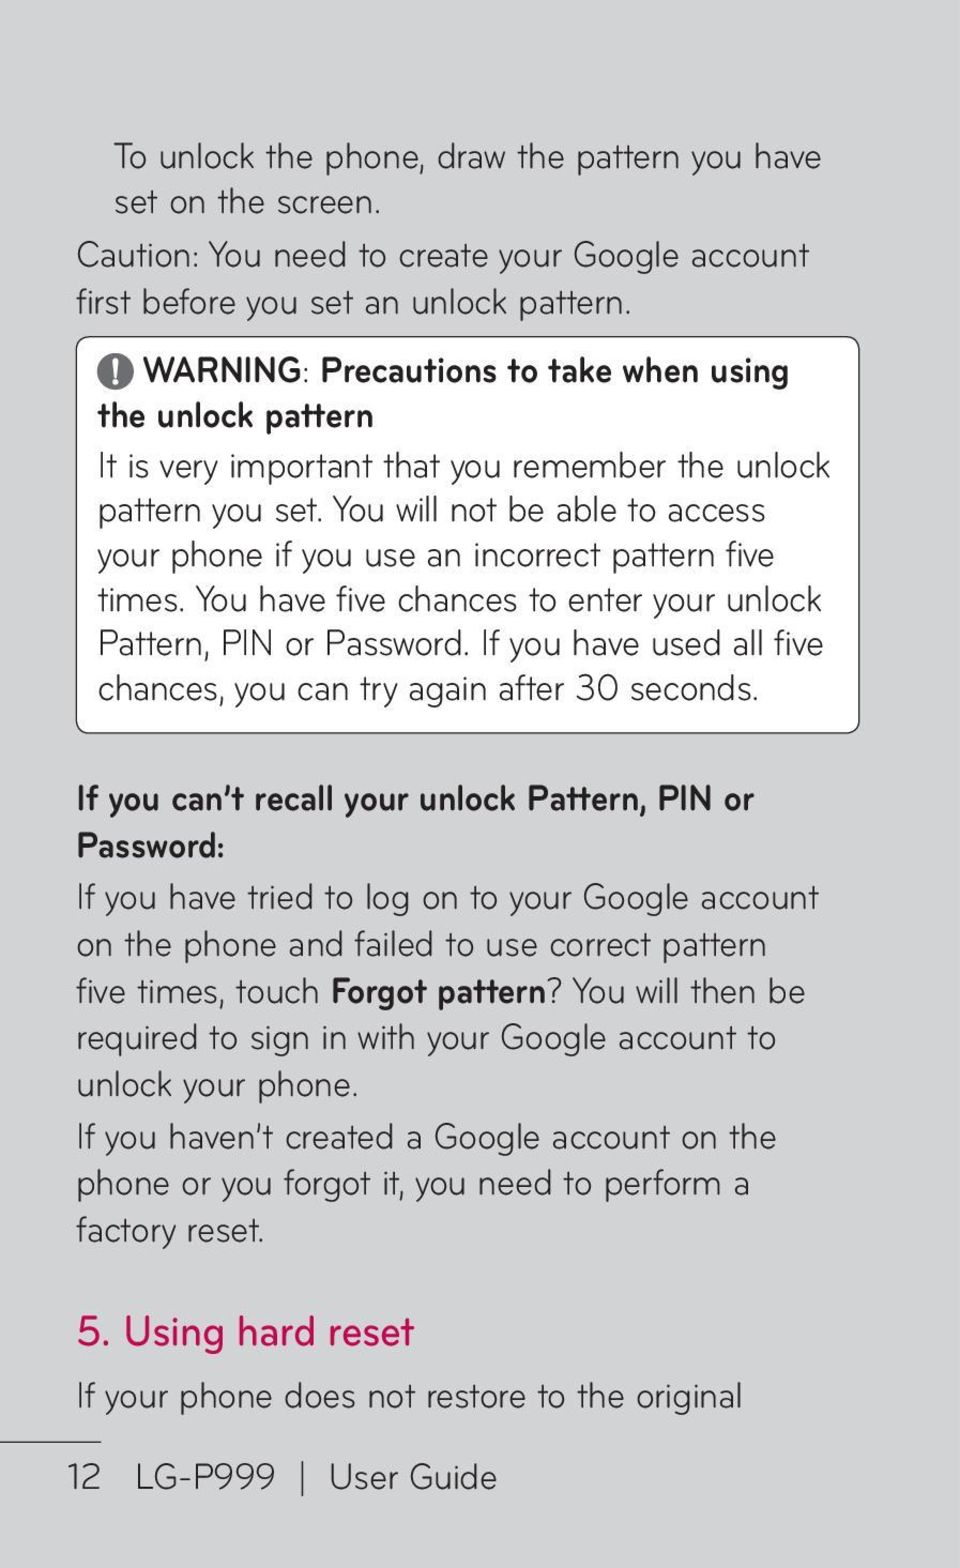 You will not be able to access your phone if you use an incorrect pattern five times. You have five chances to enter your unlock Pattern, PIN or Password.